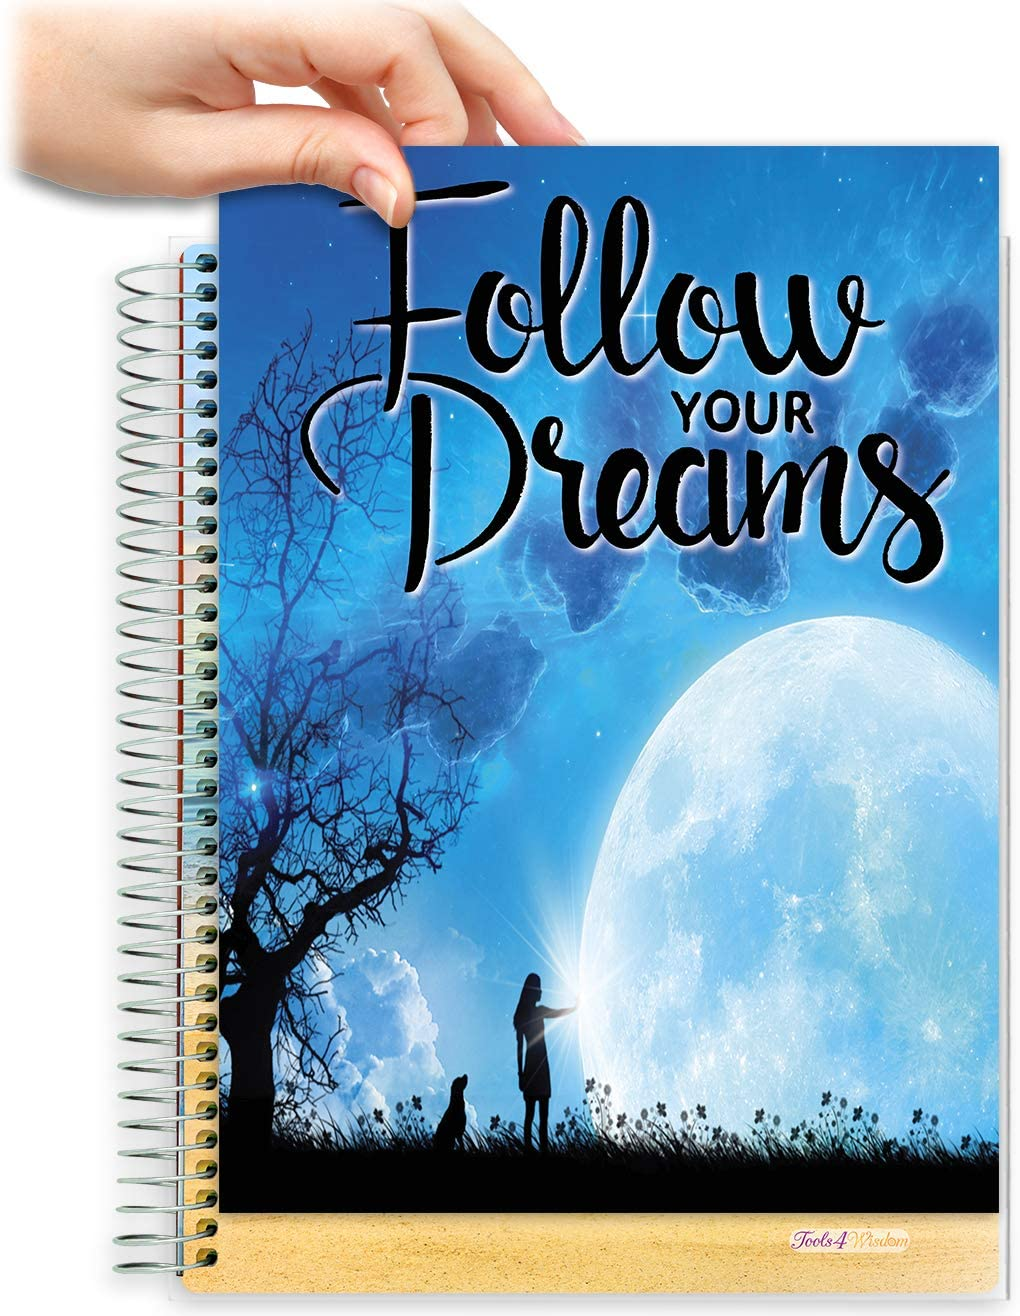 8.5x11 Customizable Softcover Planner • April 2021 to June 2022 Academic Year • Follow Your Dreams